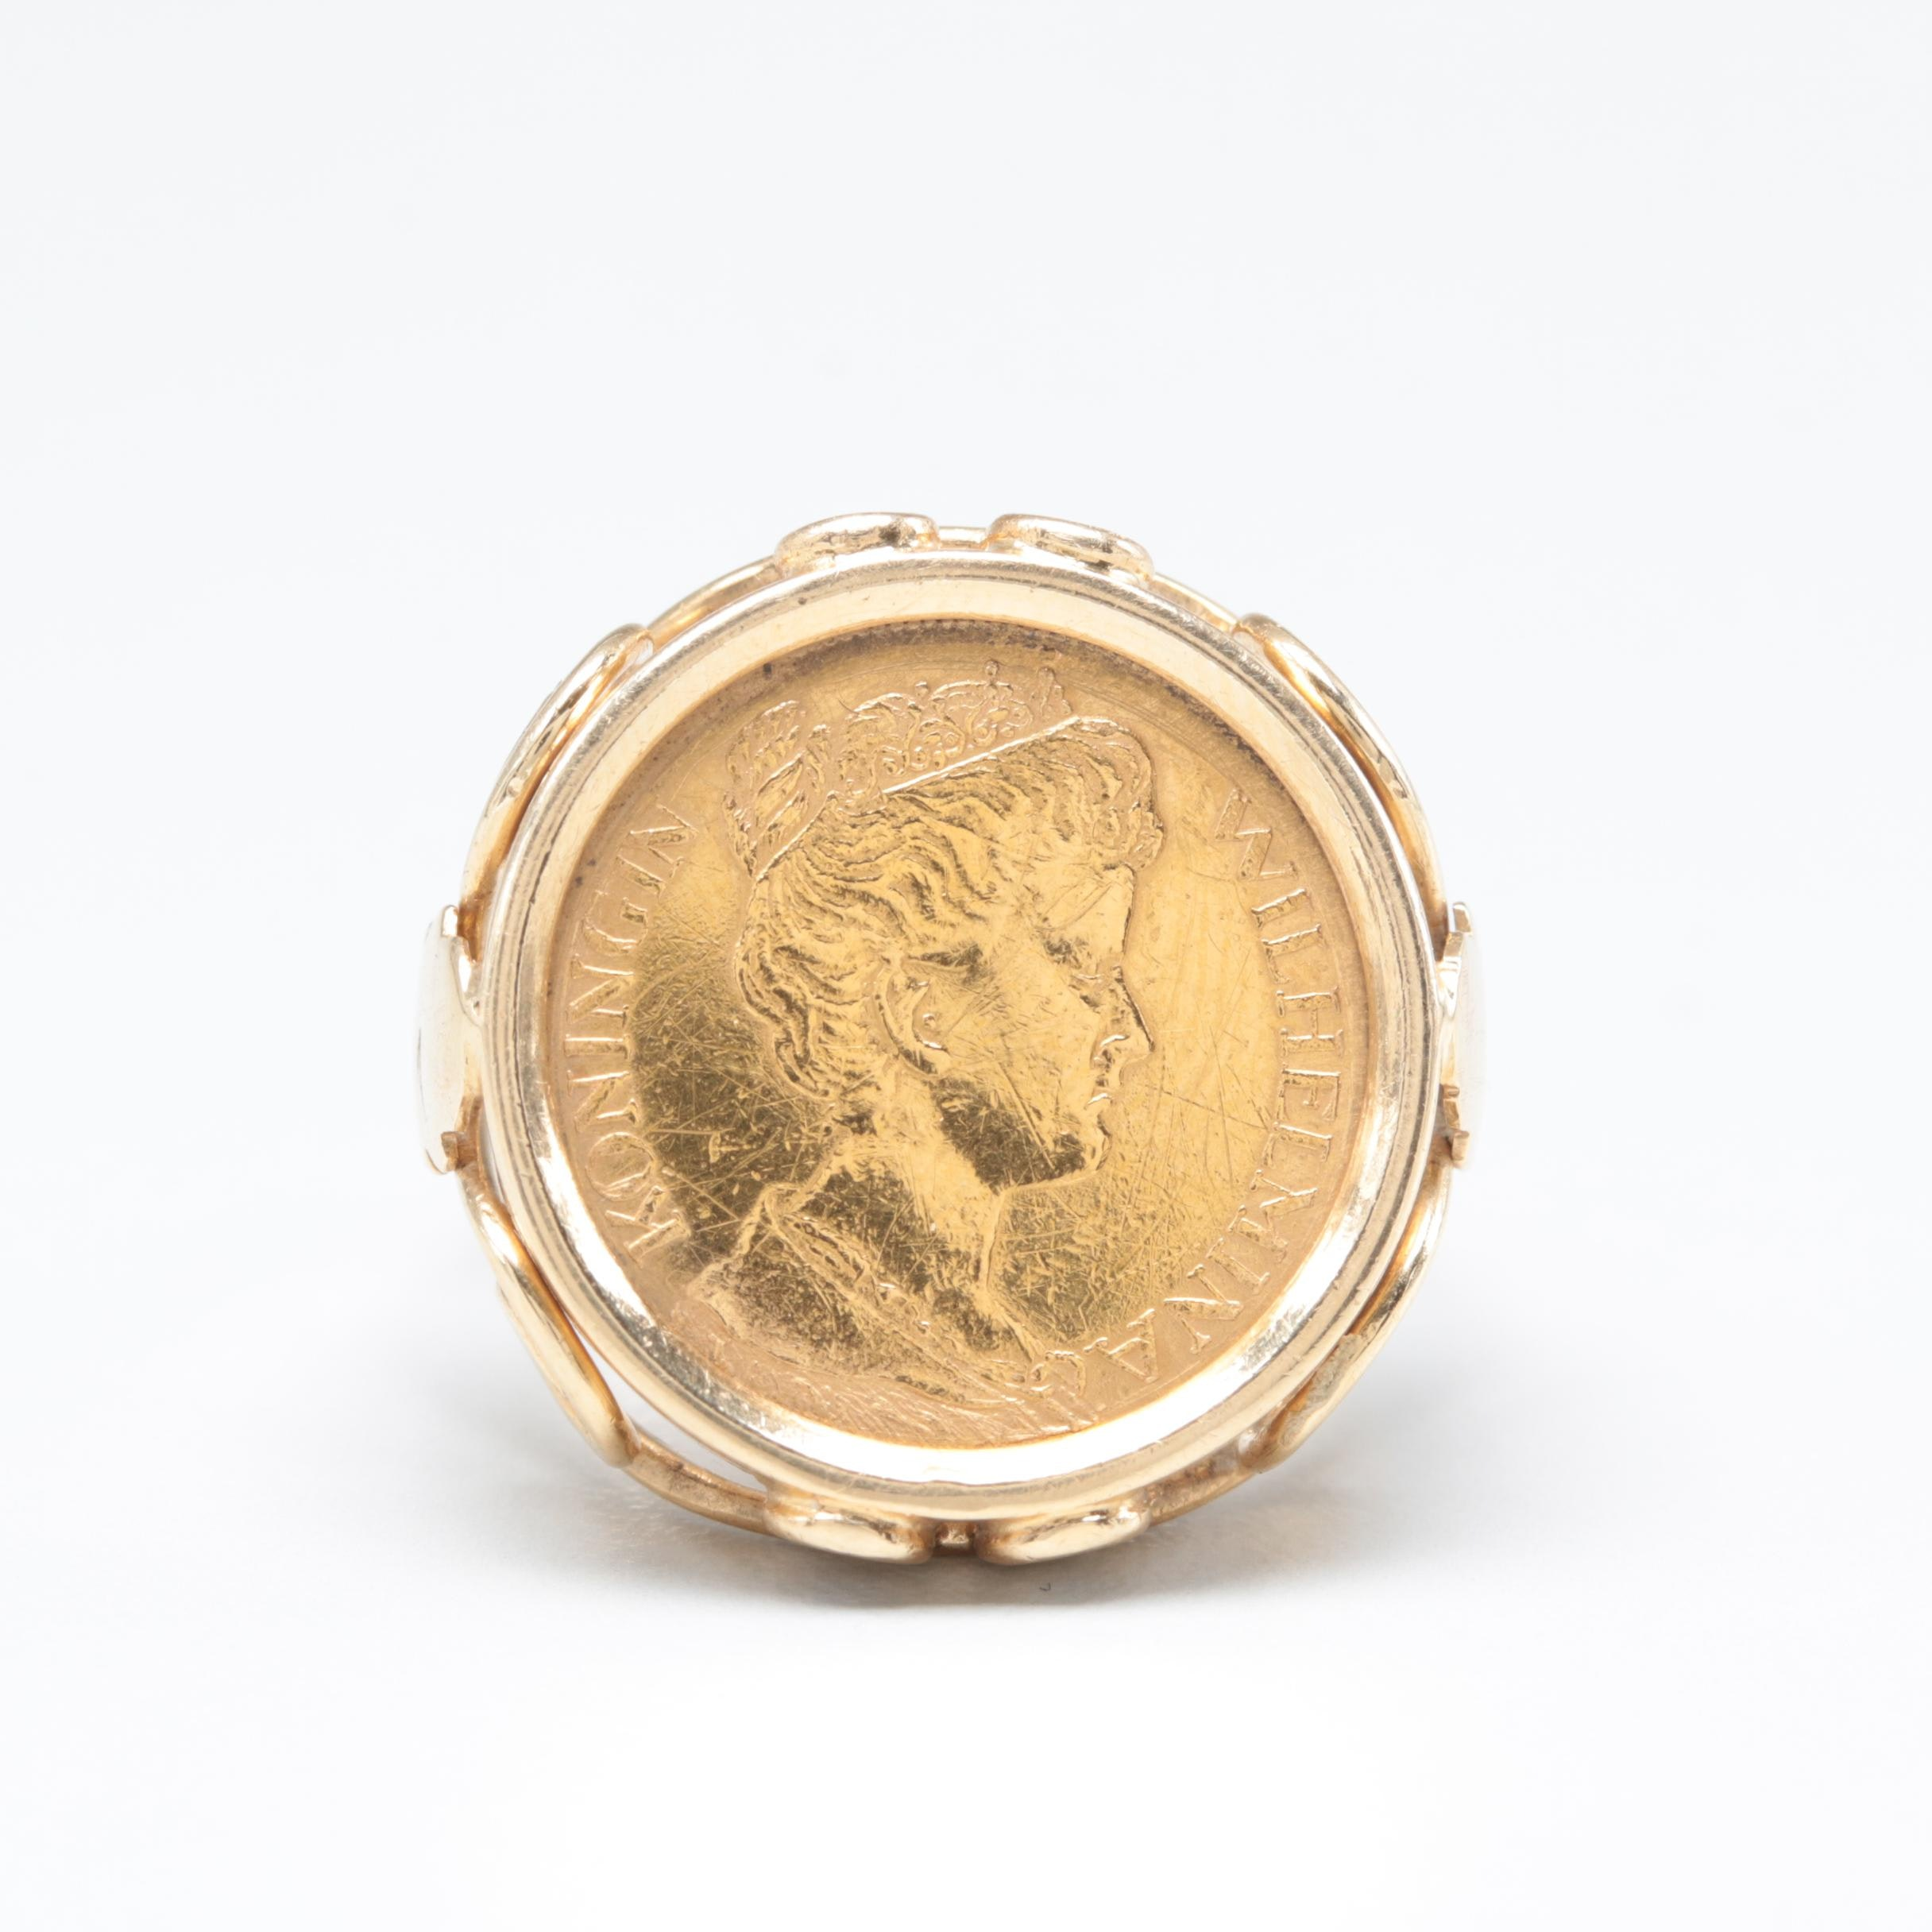 14K Yellow Gold Ring with a 1912 Netherlands Five Gulden 22K Gold Coin